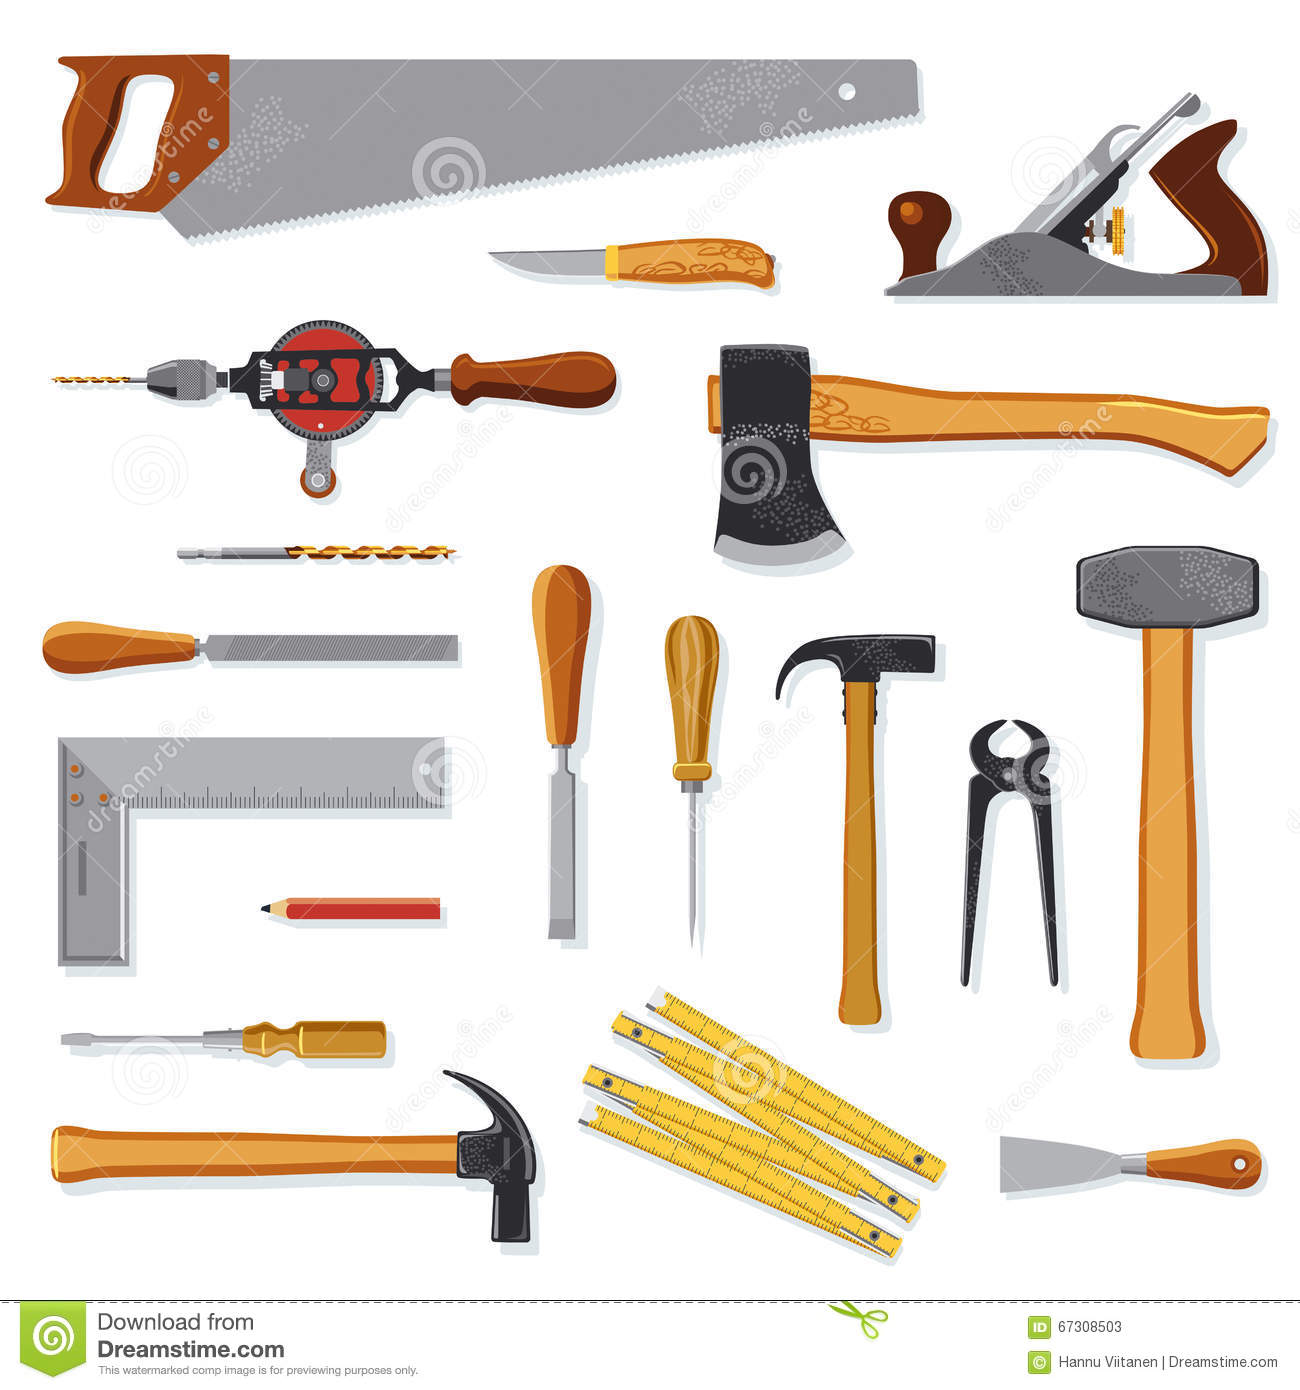 Tools Of Carpenter - Vector Cartoon Vector | CartoonDealer.com #8109857